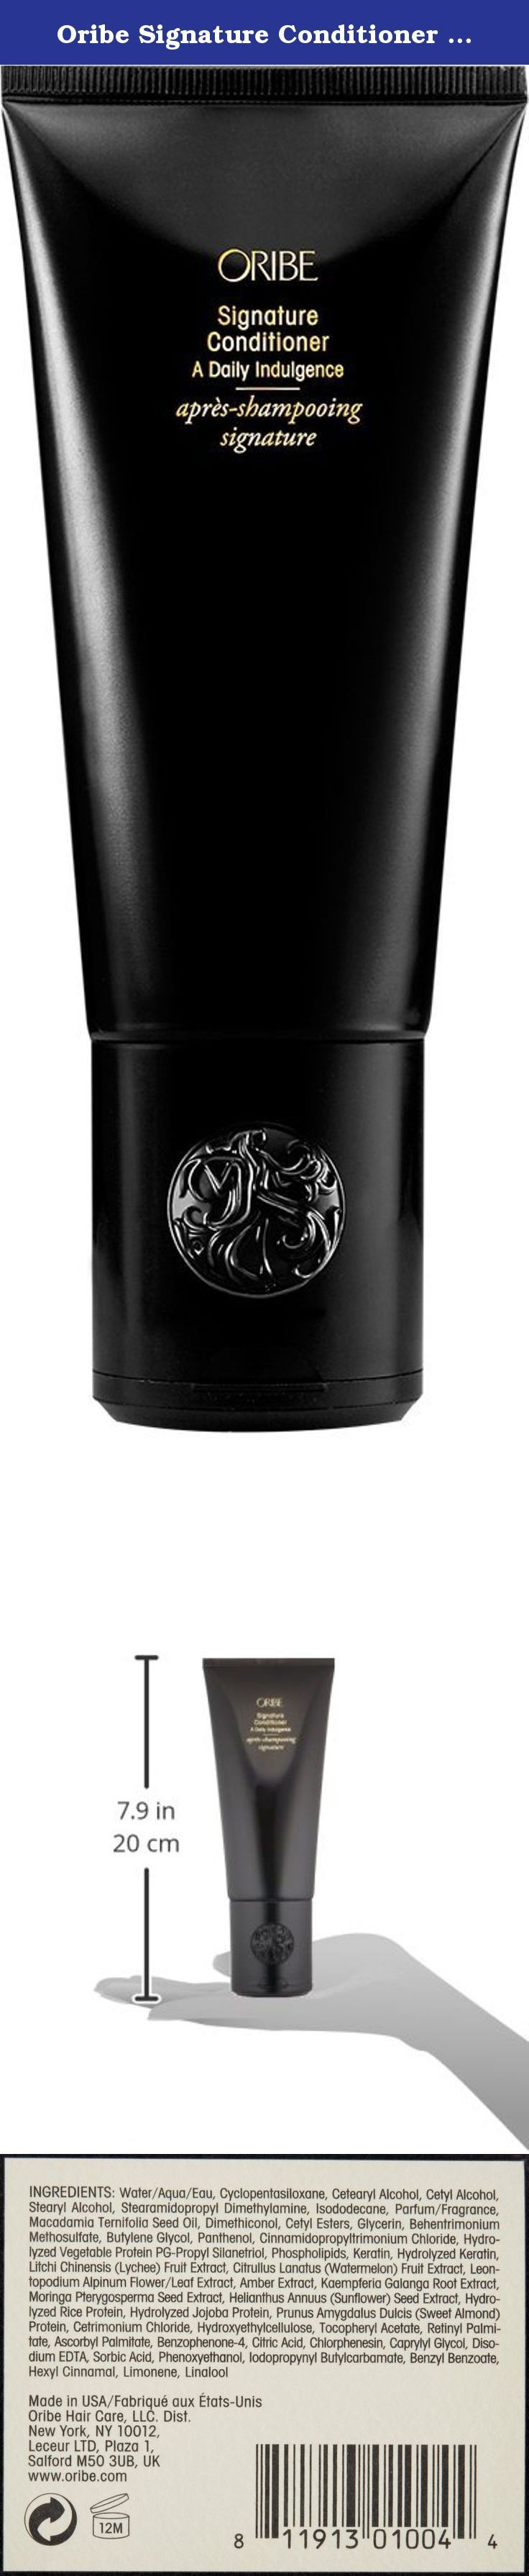 Oribe Signature Conditioner 6.8 FL OZ. Your hair works hard all day long, from protecting your scalp from the sun to securing you dates. Doesn't your mane deserve a drink? Consider this conditioner from oribe an end to prohibition. Dried out strands will soak up this super-hydrating, tangle-fighting formula, which is designed to restore damaged hair to its glorious natural texture. Whole wheat proteins revitalize dry hair, while lychee extract, edelweiss flower extract, and watermelon...